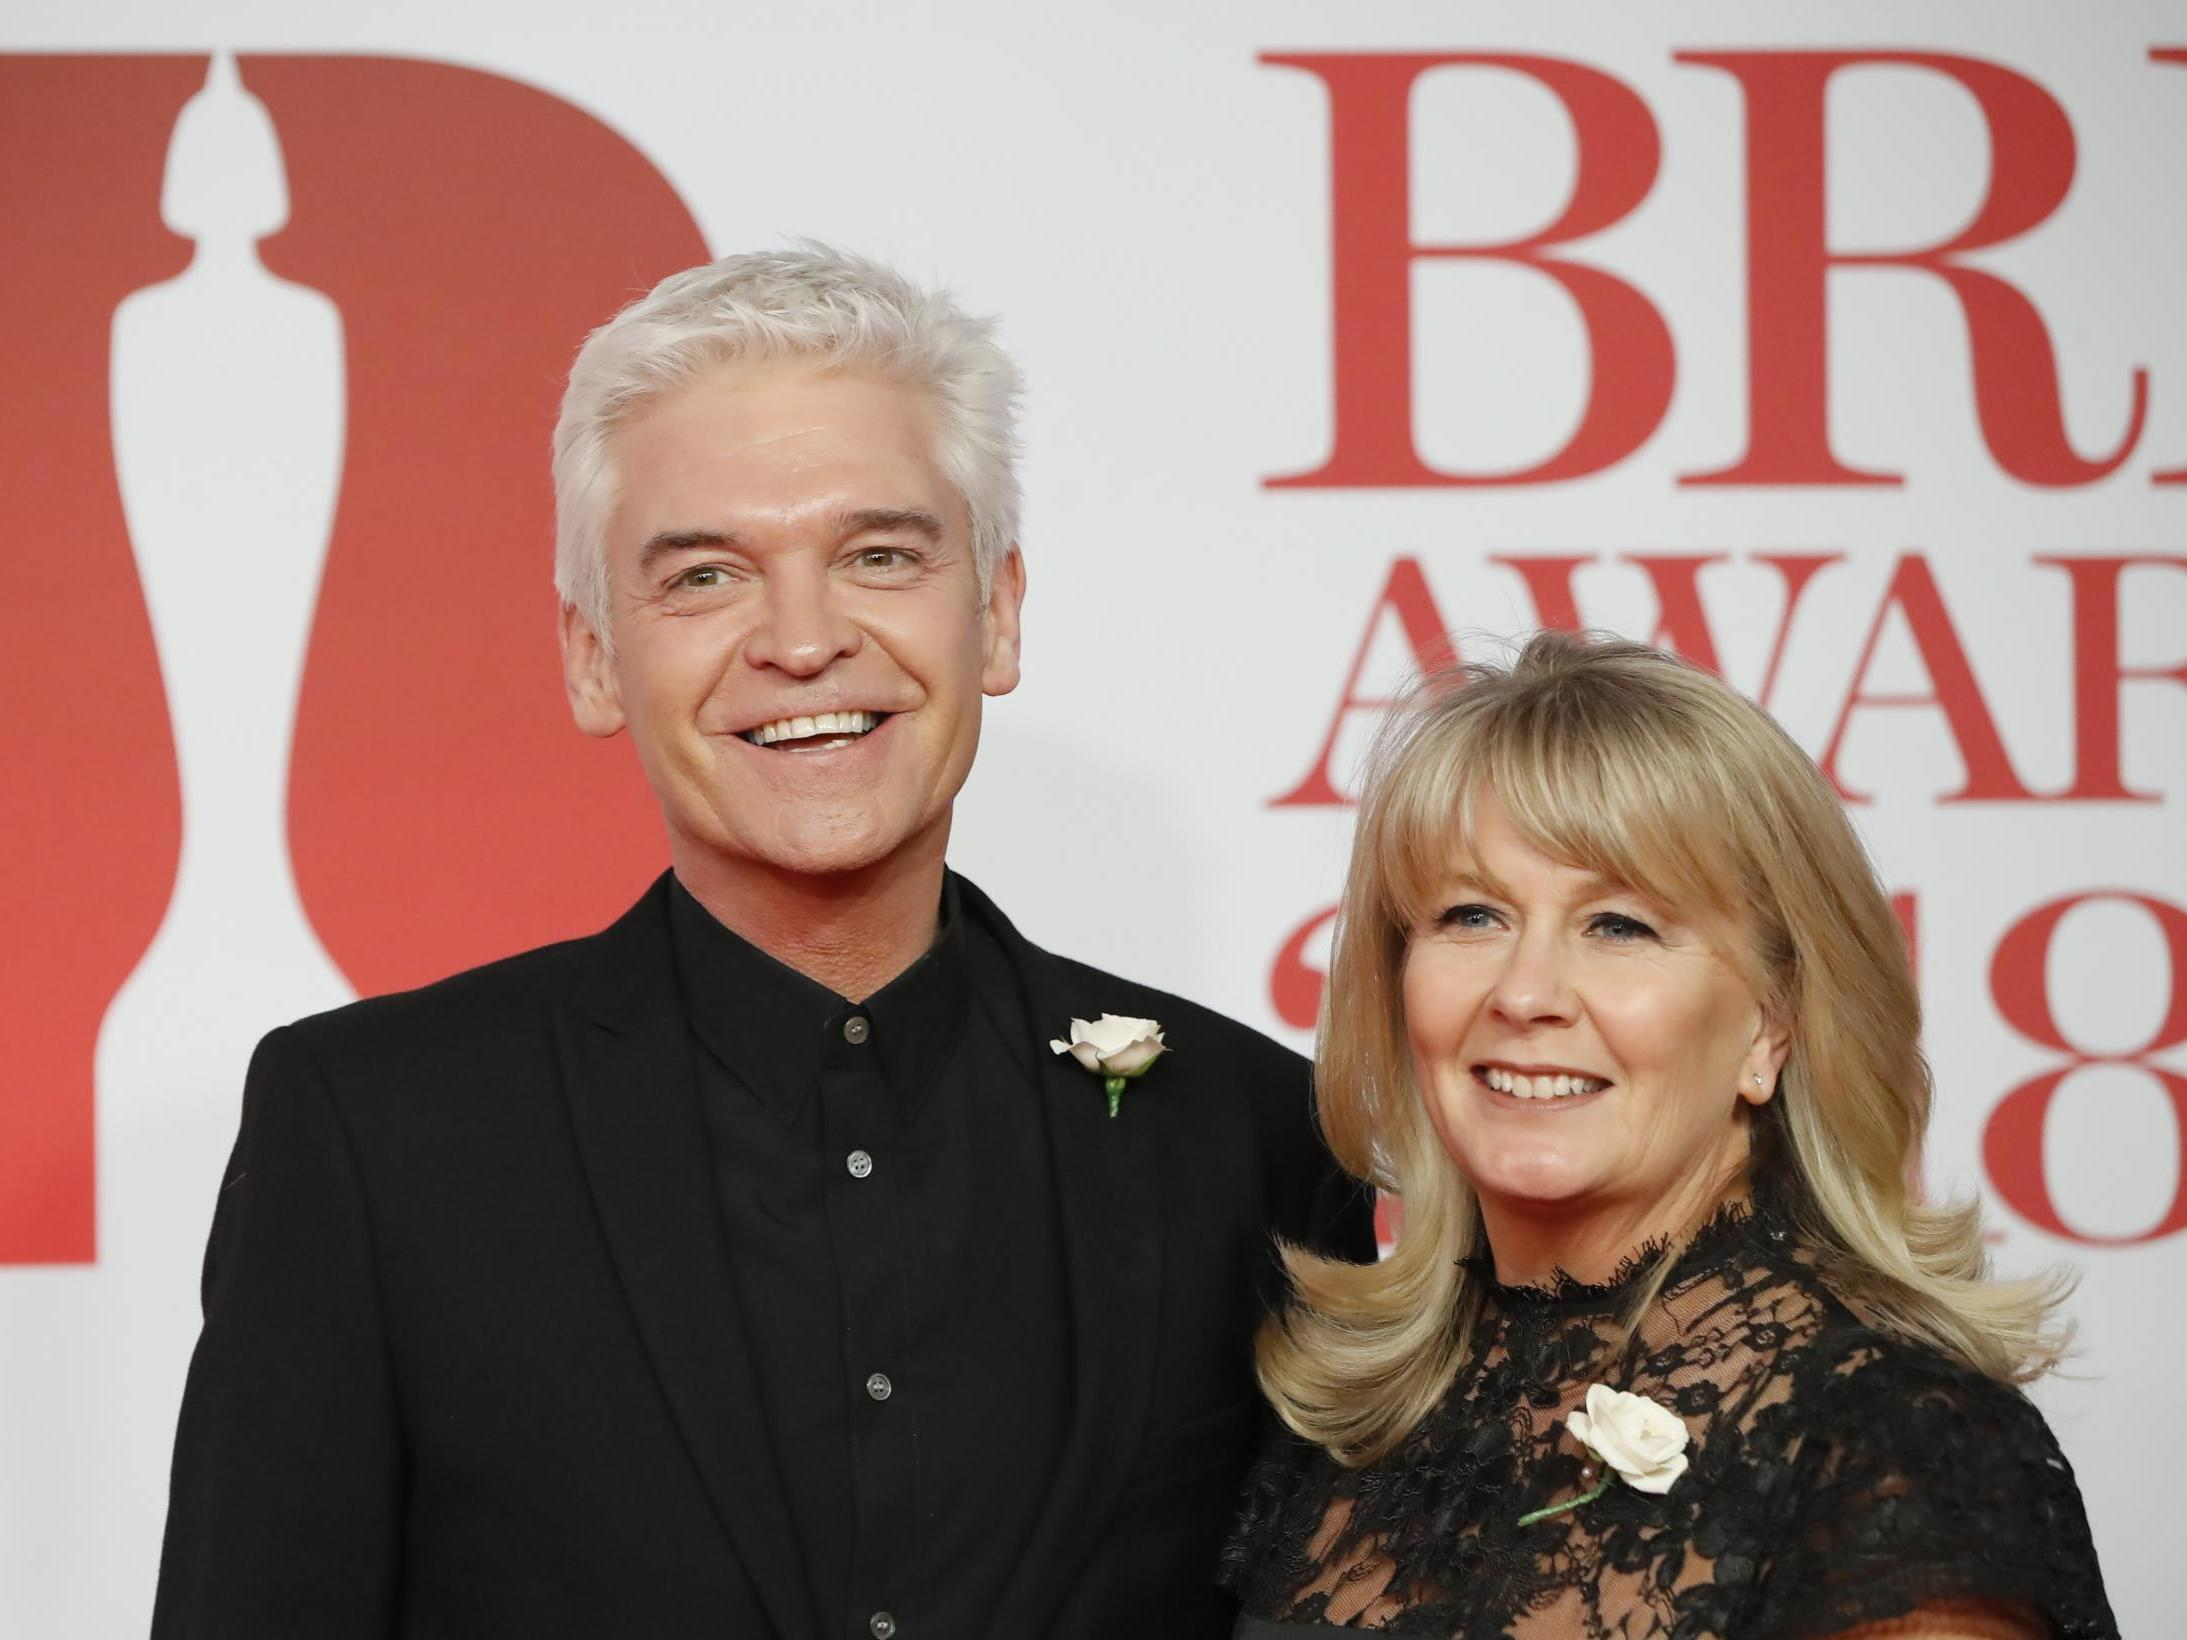 Phillip Schofield praises 'amazing' wife Stephanie Lowe after coming out as gay: 'She has known for a while'